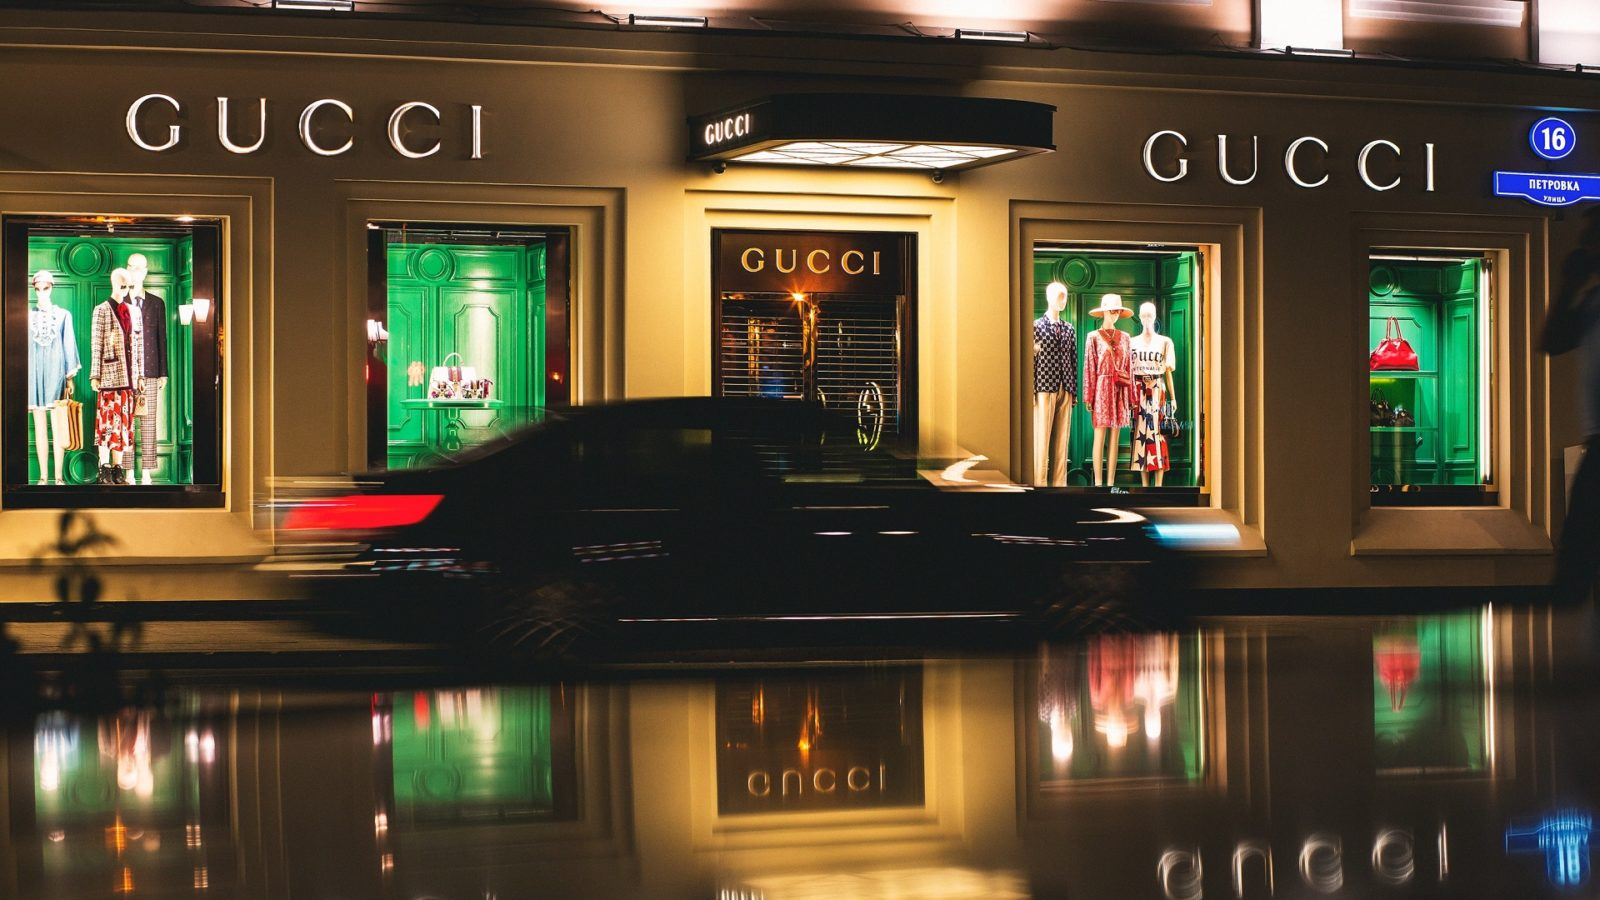 Know the history of the luxury fashion brand before you watch 'House of Gucci'